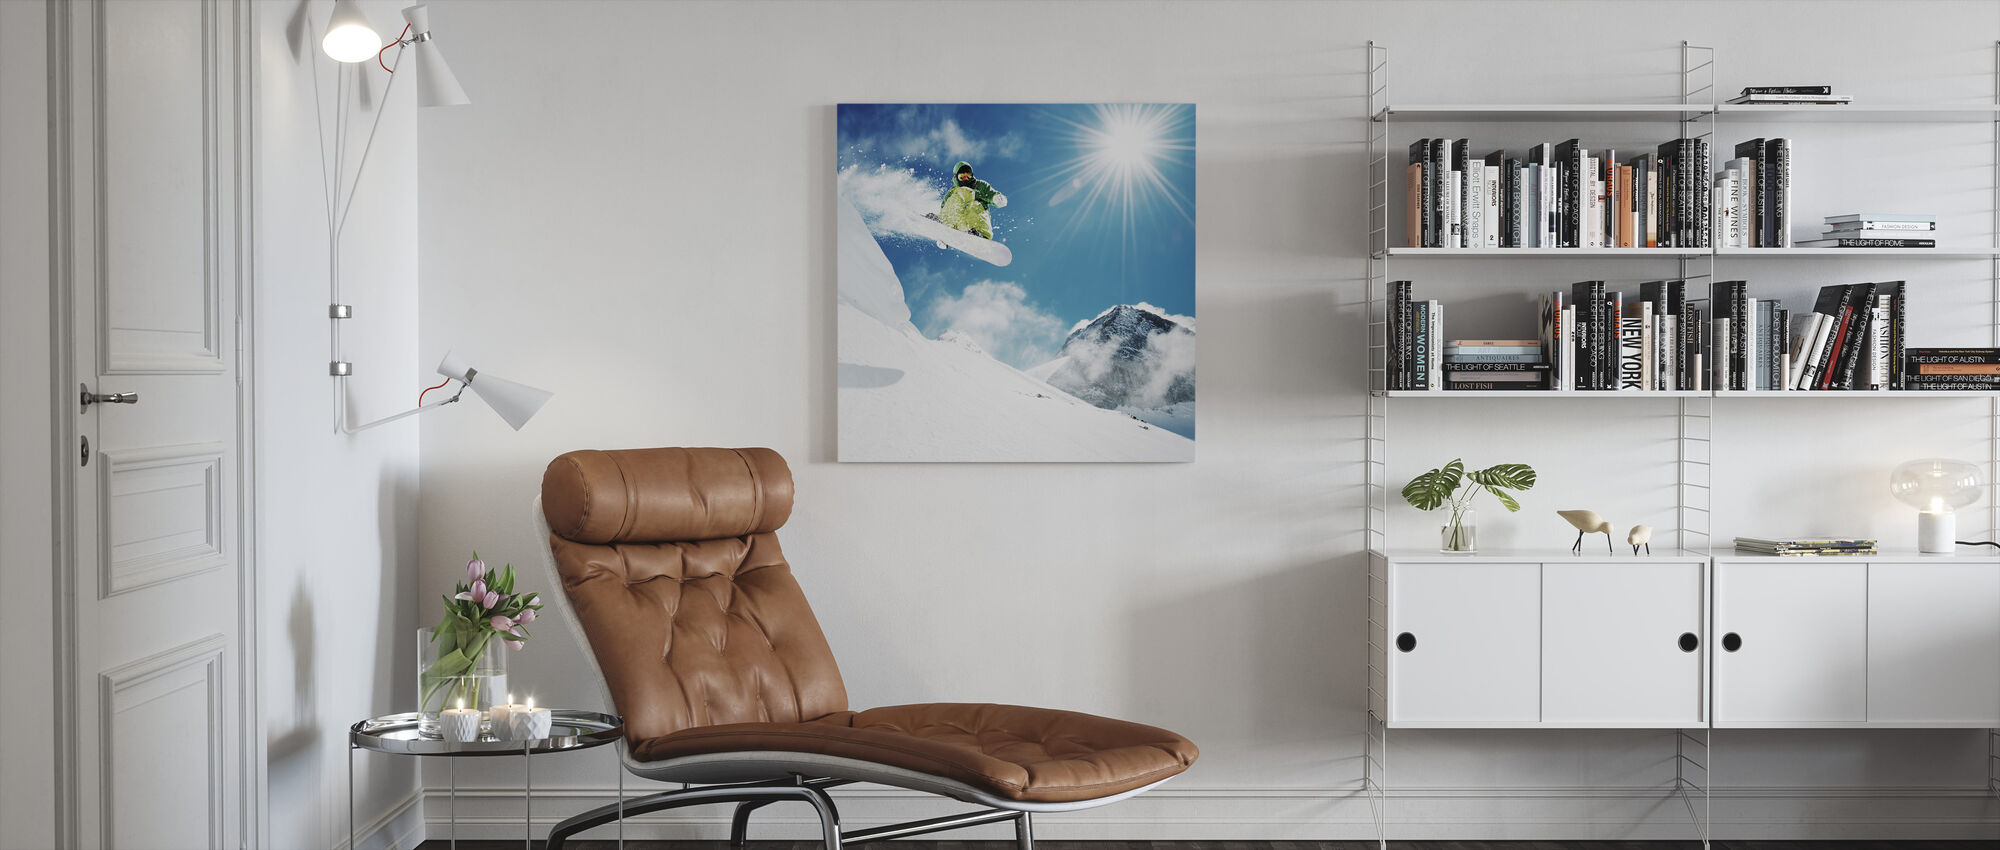 Snowboarder at Jump - Canvas print - Living Room